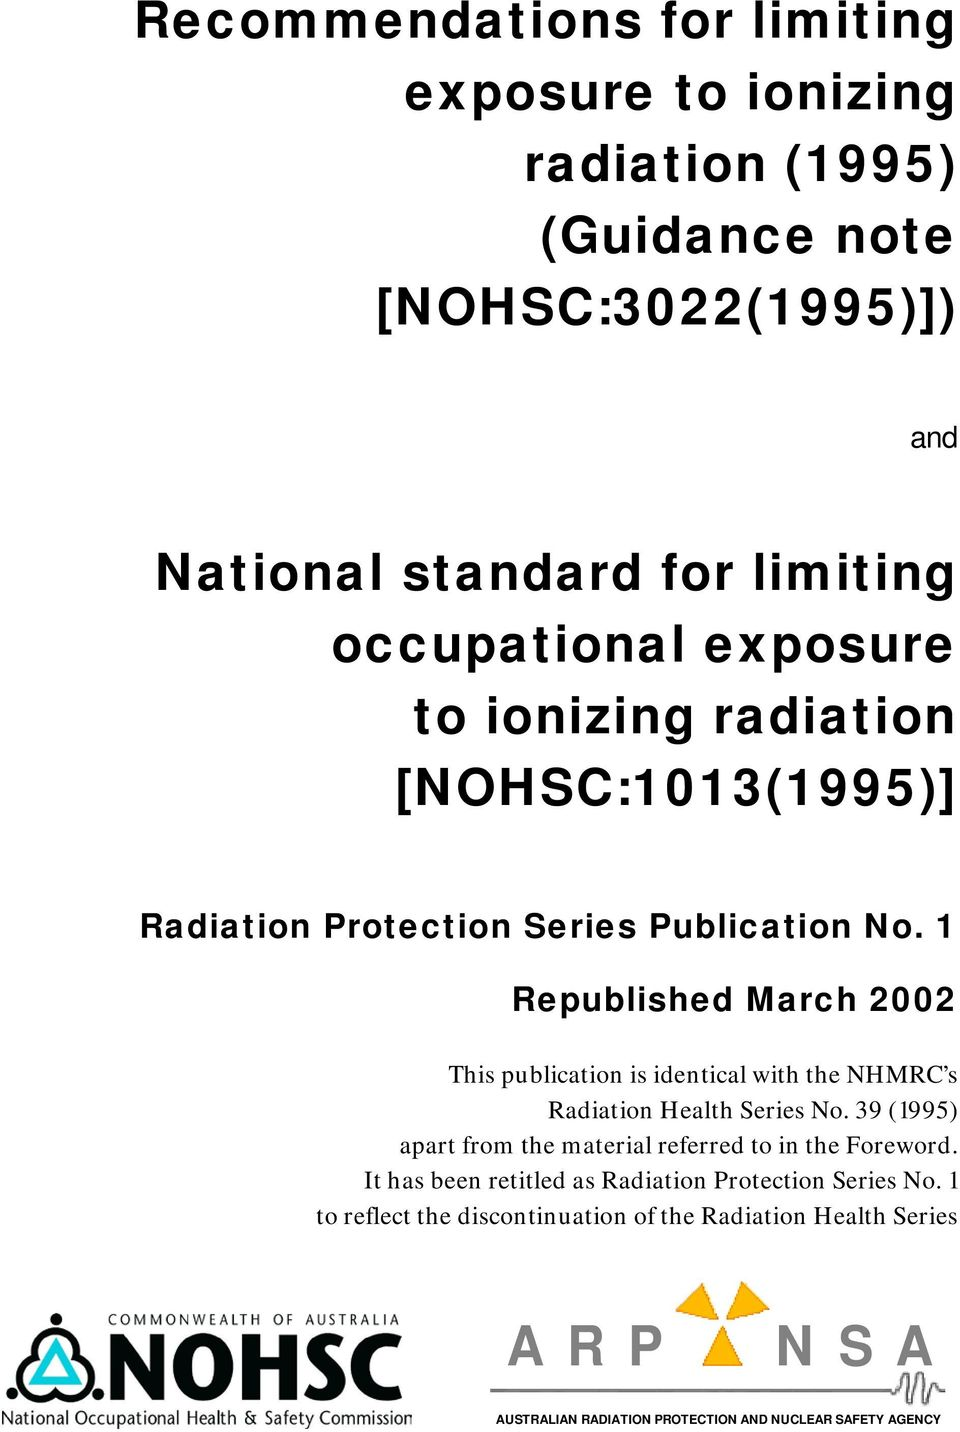 identical with the NHMRC s Radiation Health No. 39 (1995) apart from the material referred to in the Foreword.